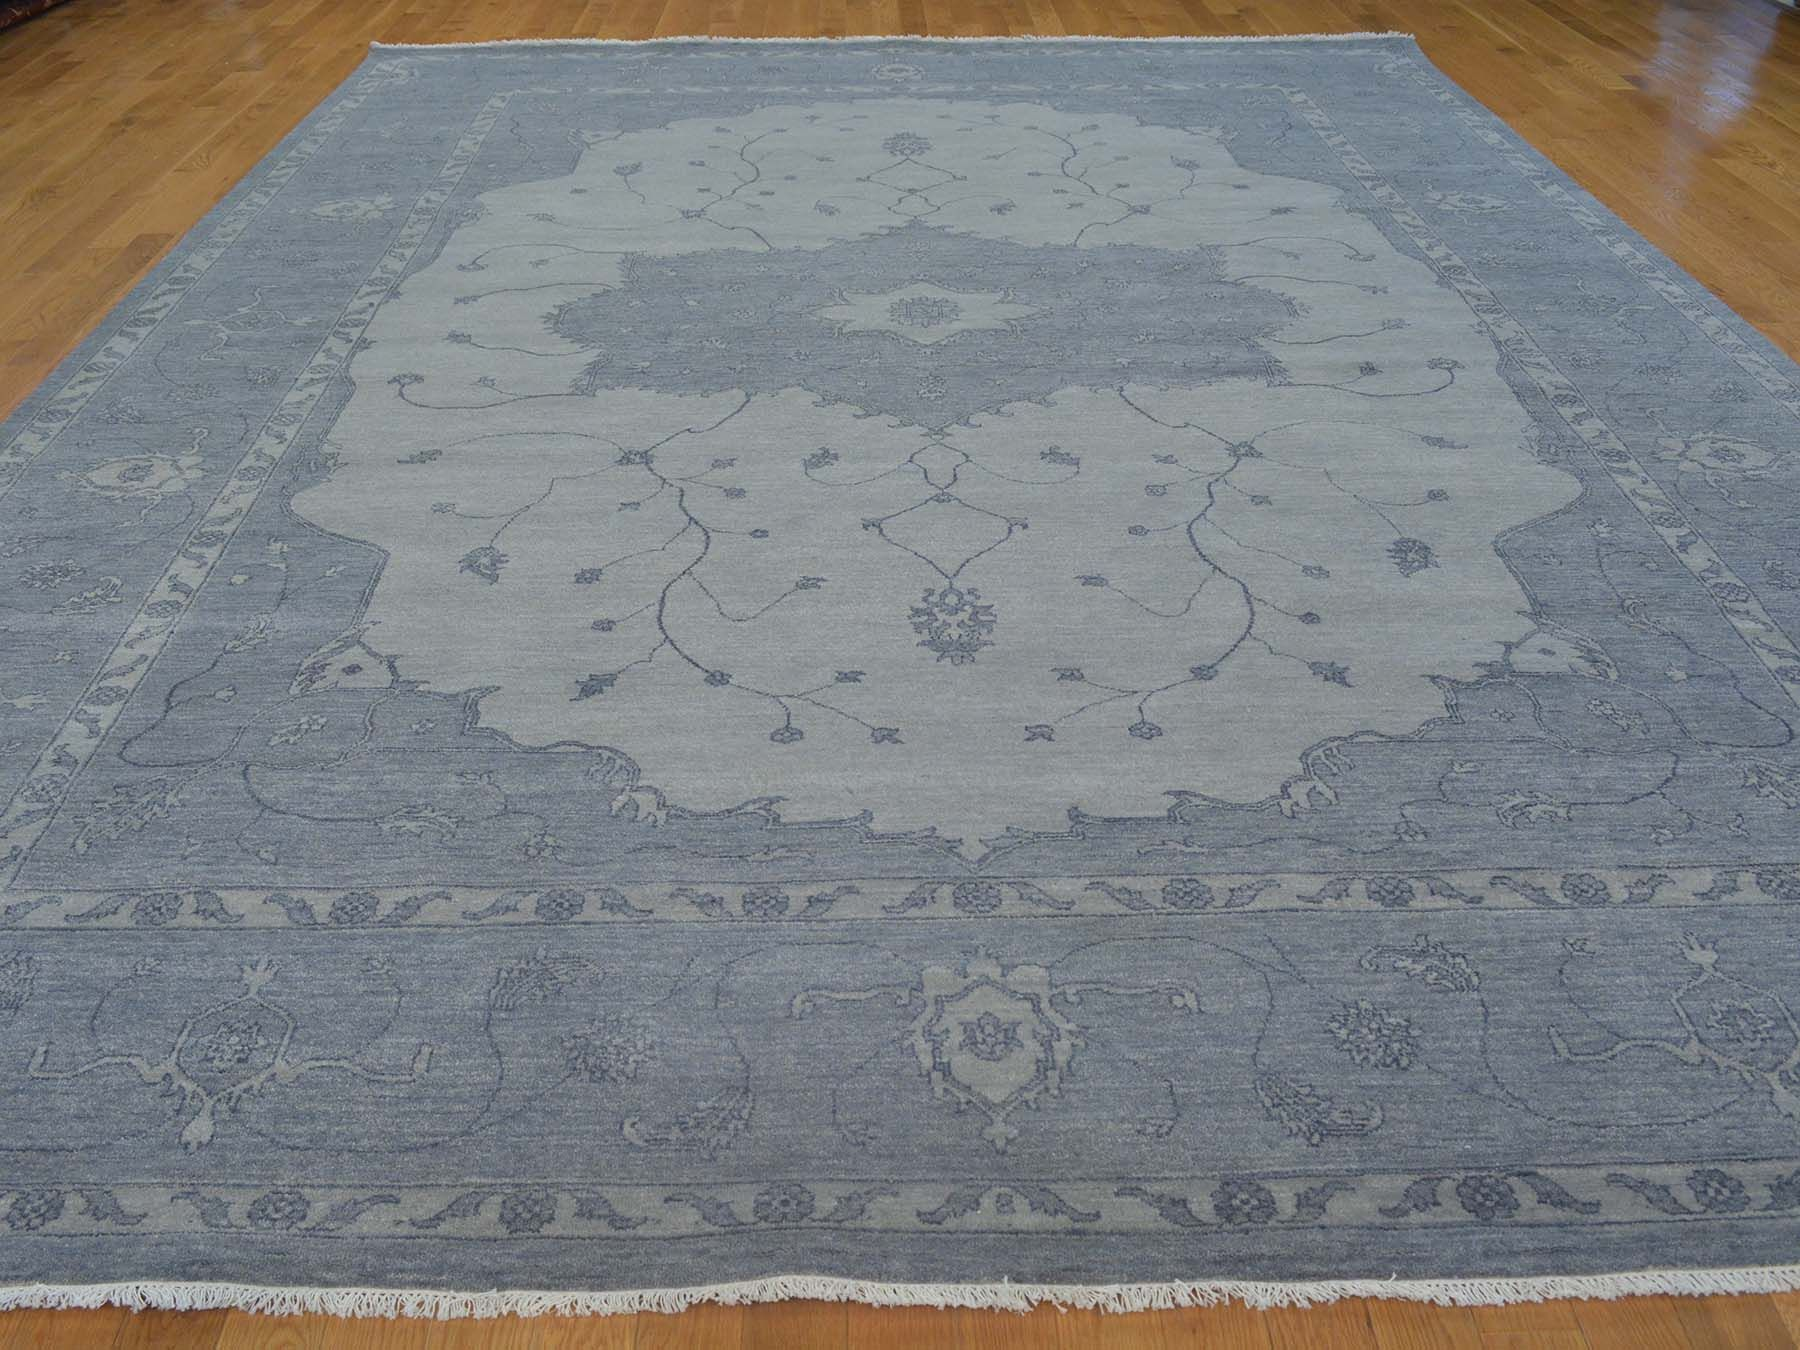 Buy 10 X 14 Overdyed Silver Blue Serapi Heriz Oriental Rug Hand Knotted Rug Rug Rugstore Rugsale Arearug Rugcle Big Rugs Rug Shopping Machine Made Rugs